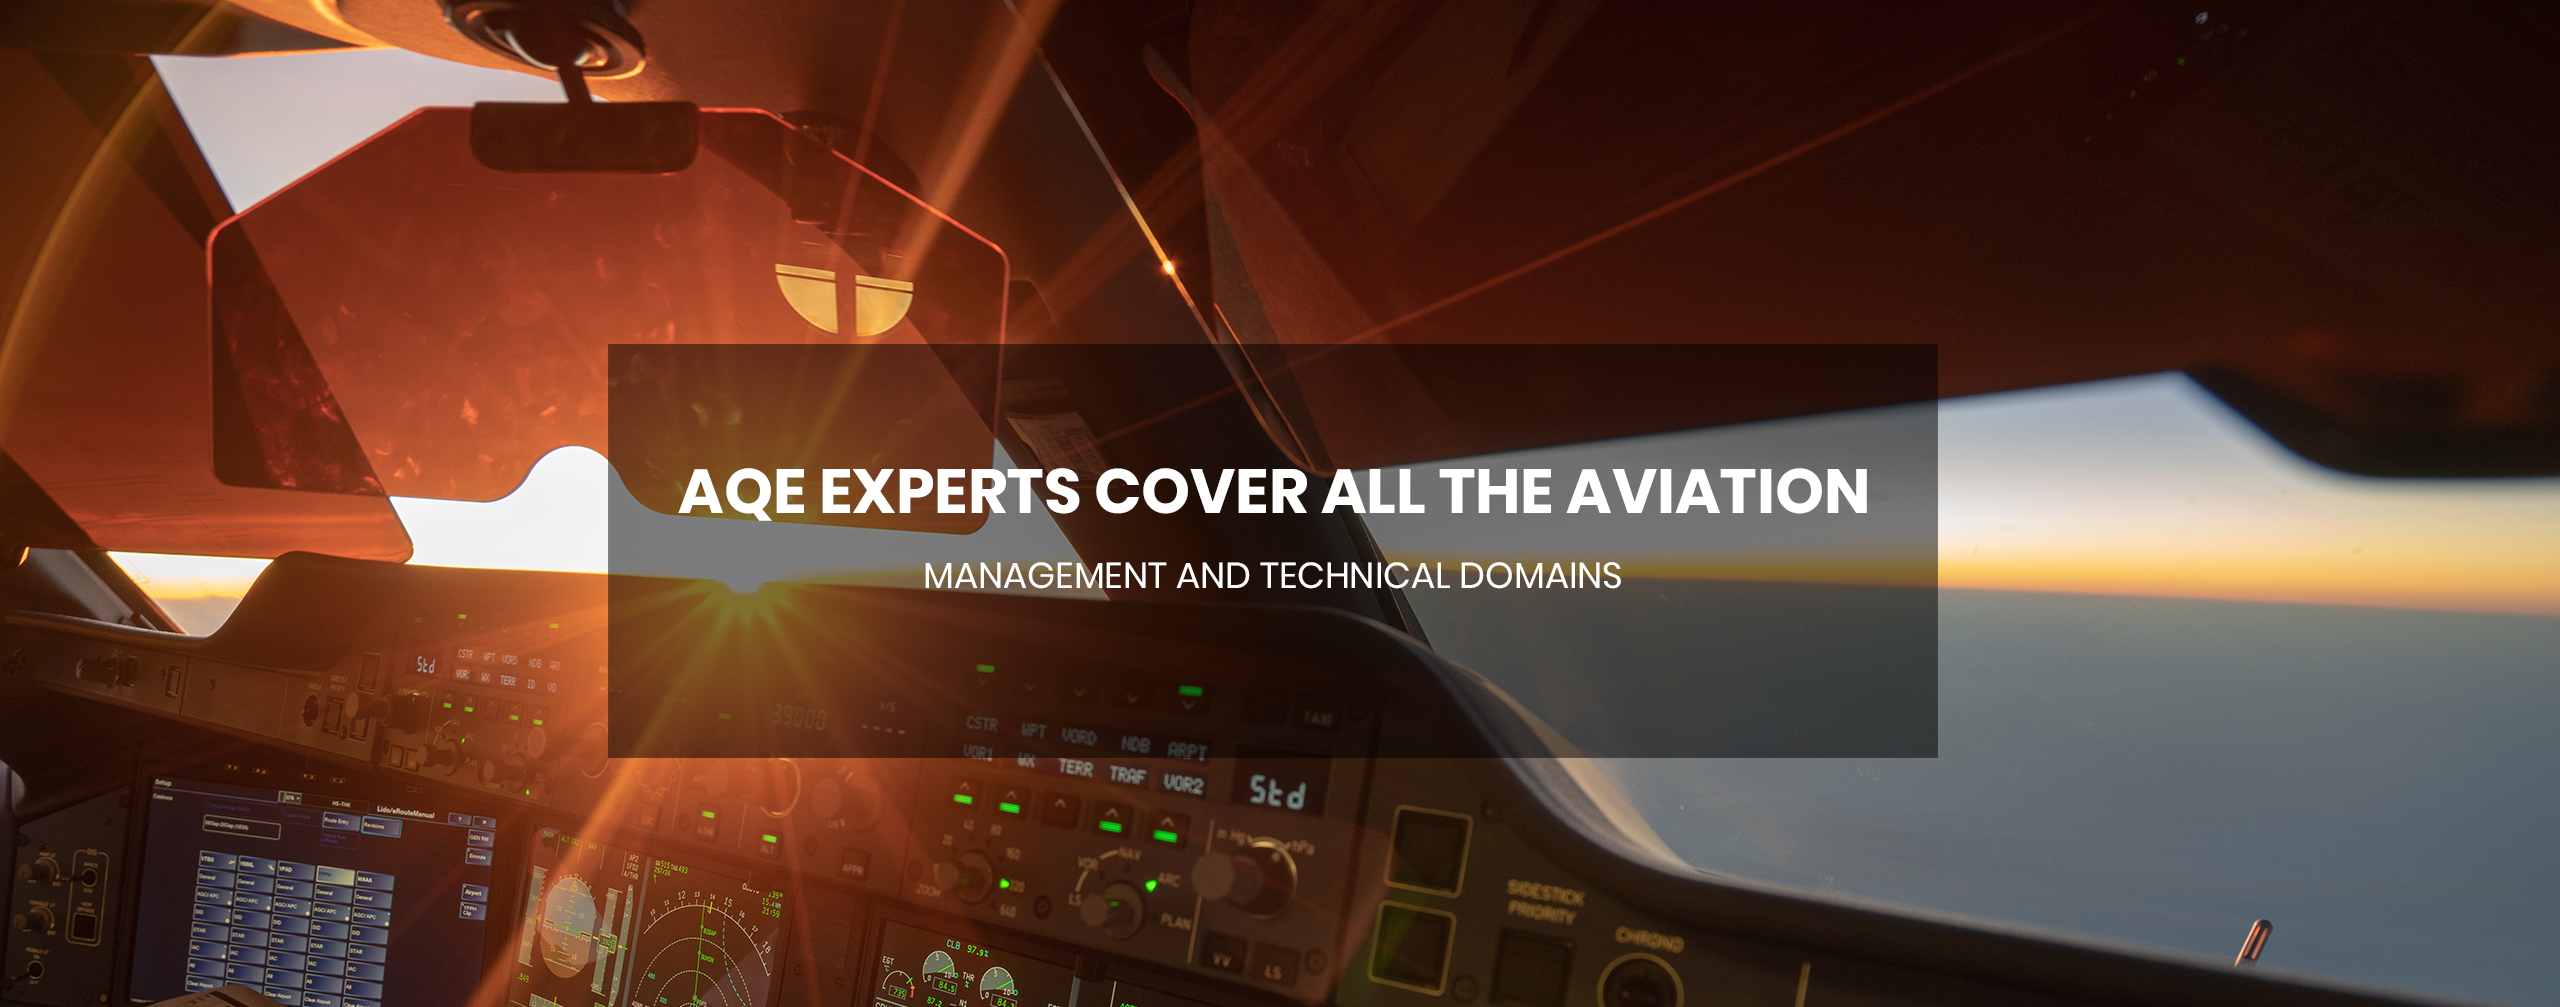 AQE experts cover all the aviation management and technical domains